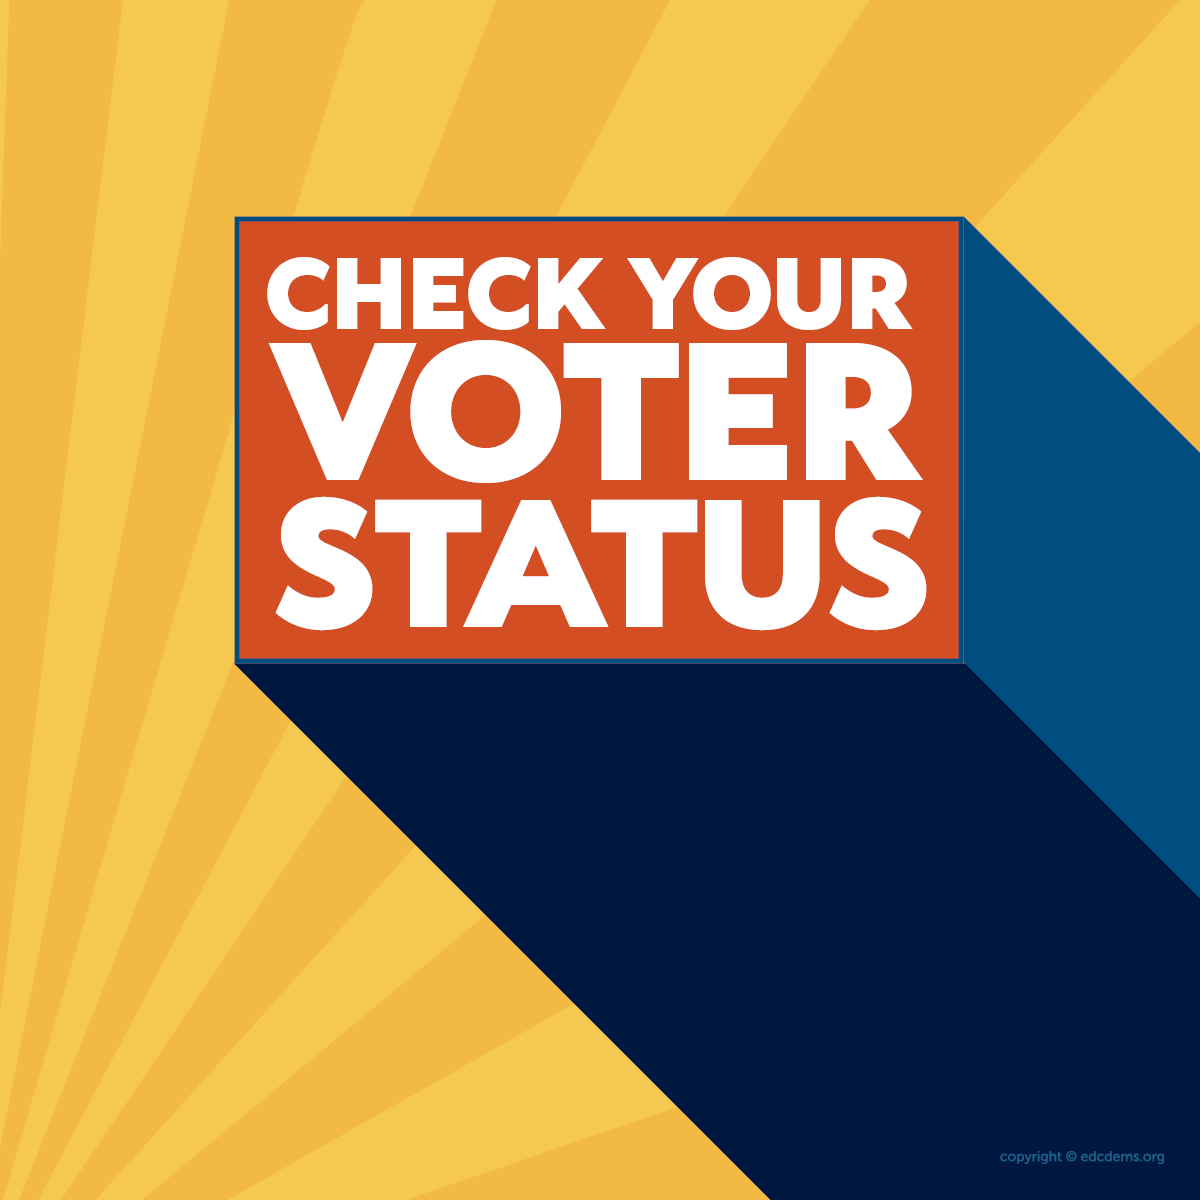 Check You Voter Status